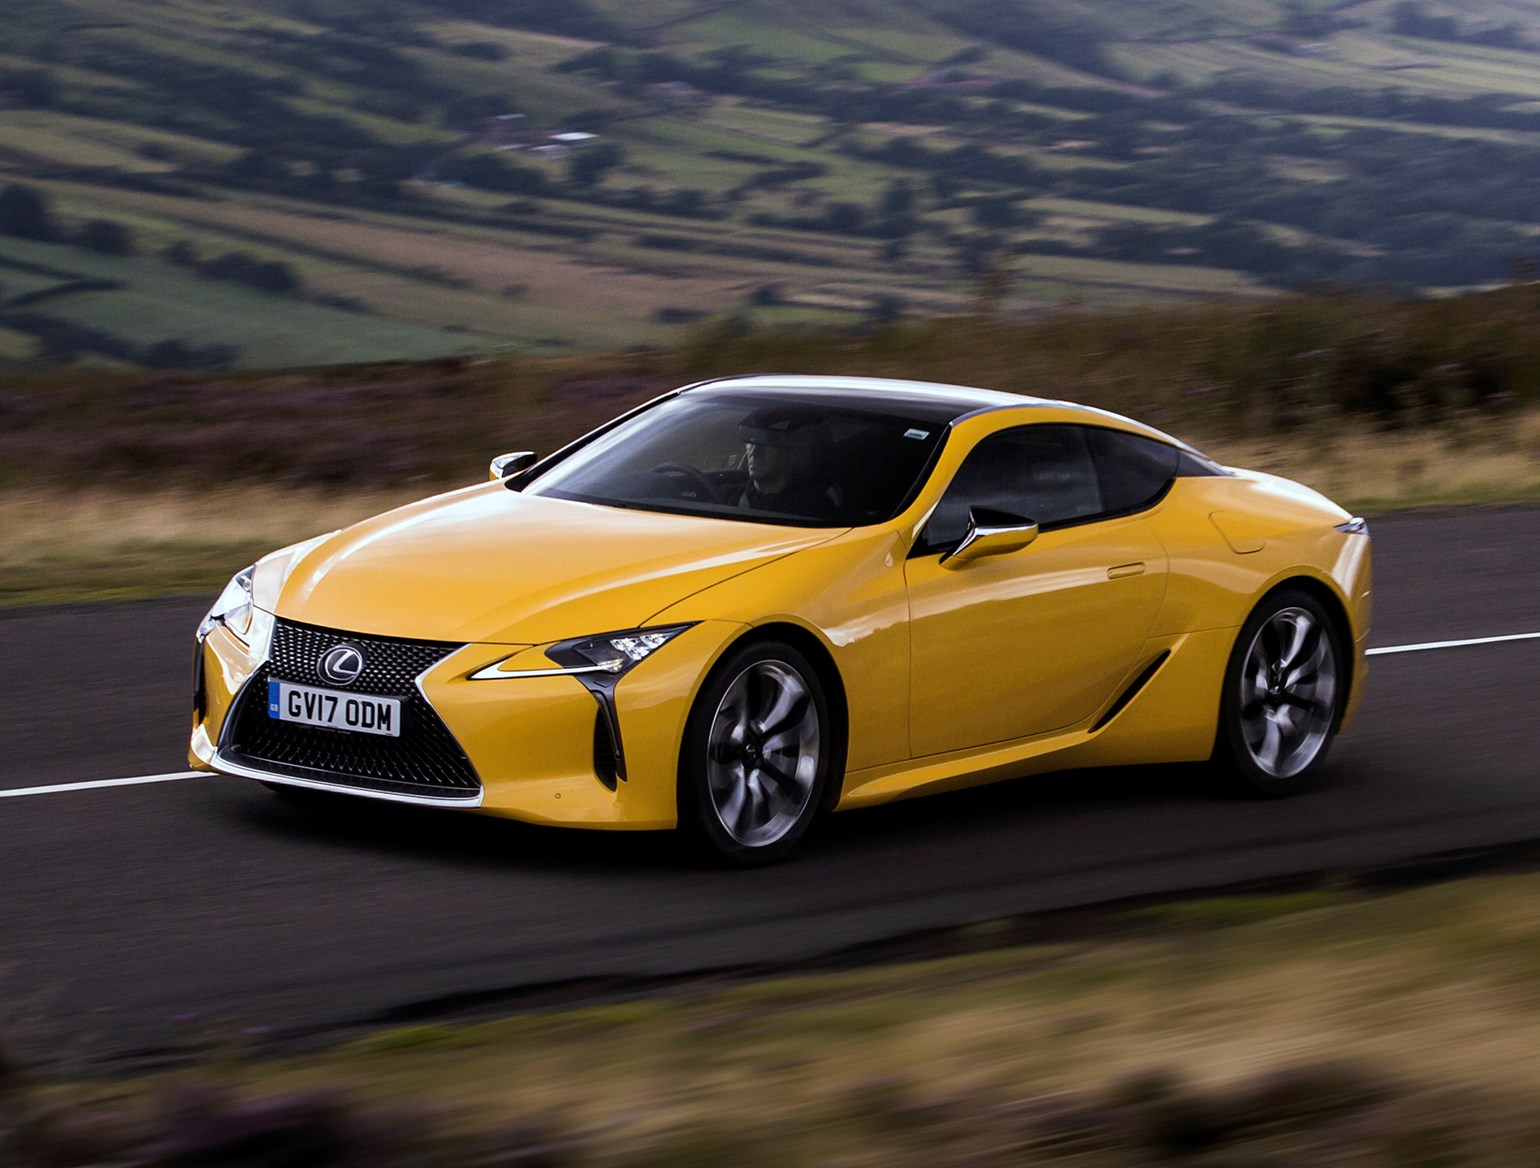 Lexus 2017 Lc Coupe Driving